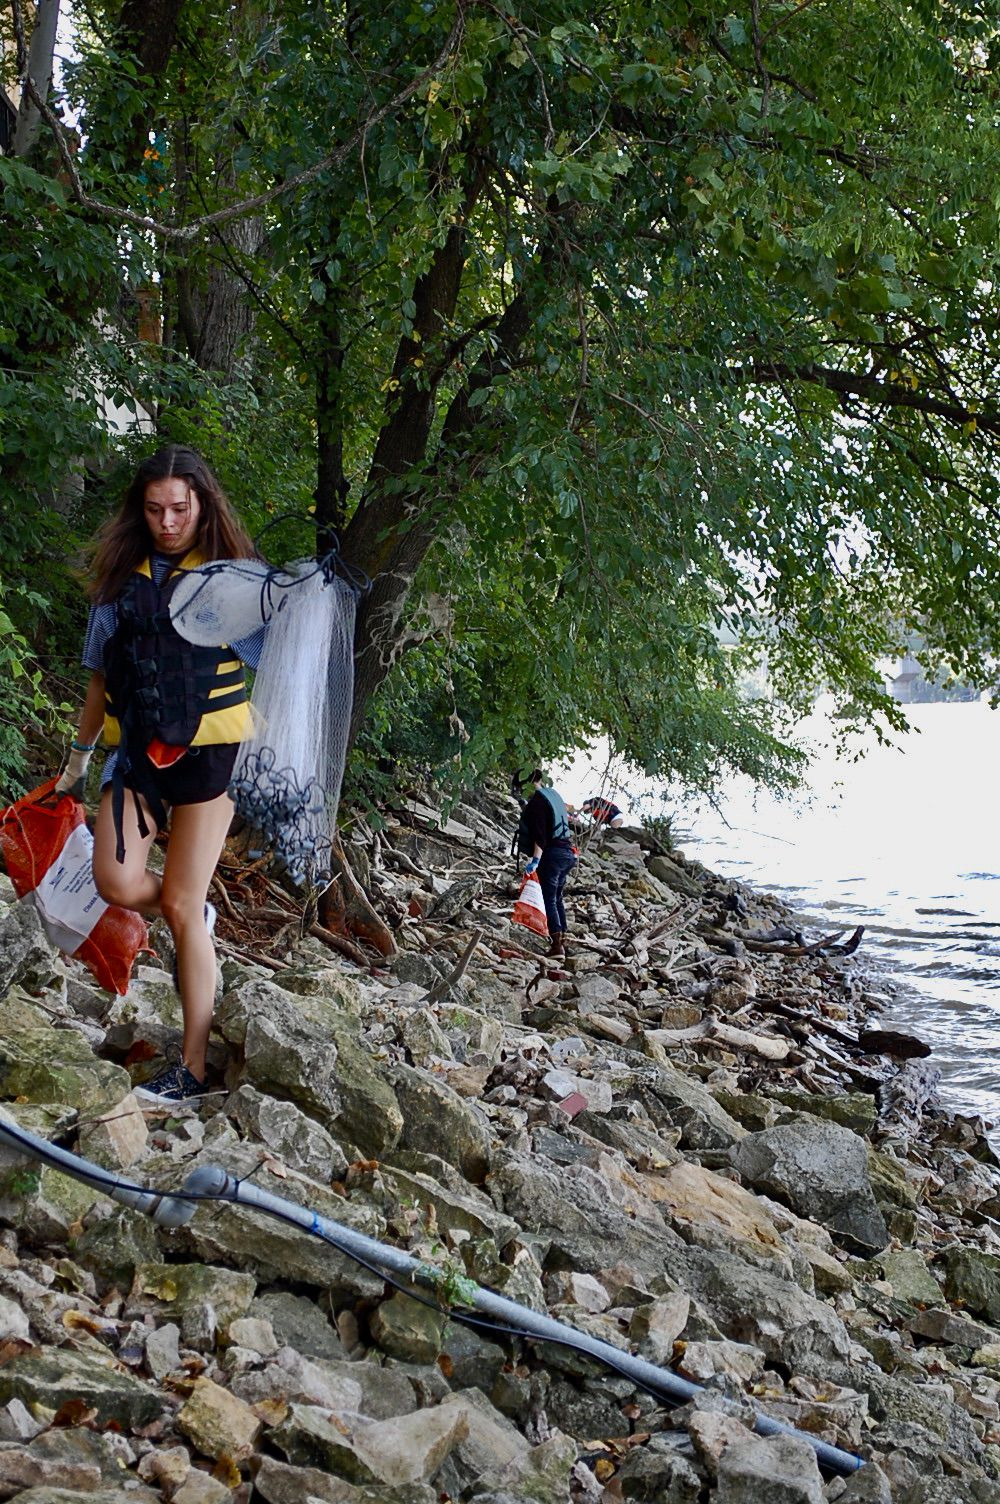 K.U. student Eleanor Walsh places trash in garbage bags as she walks on the bank of the Kansas River